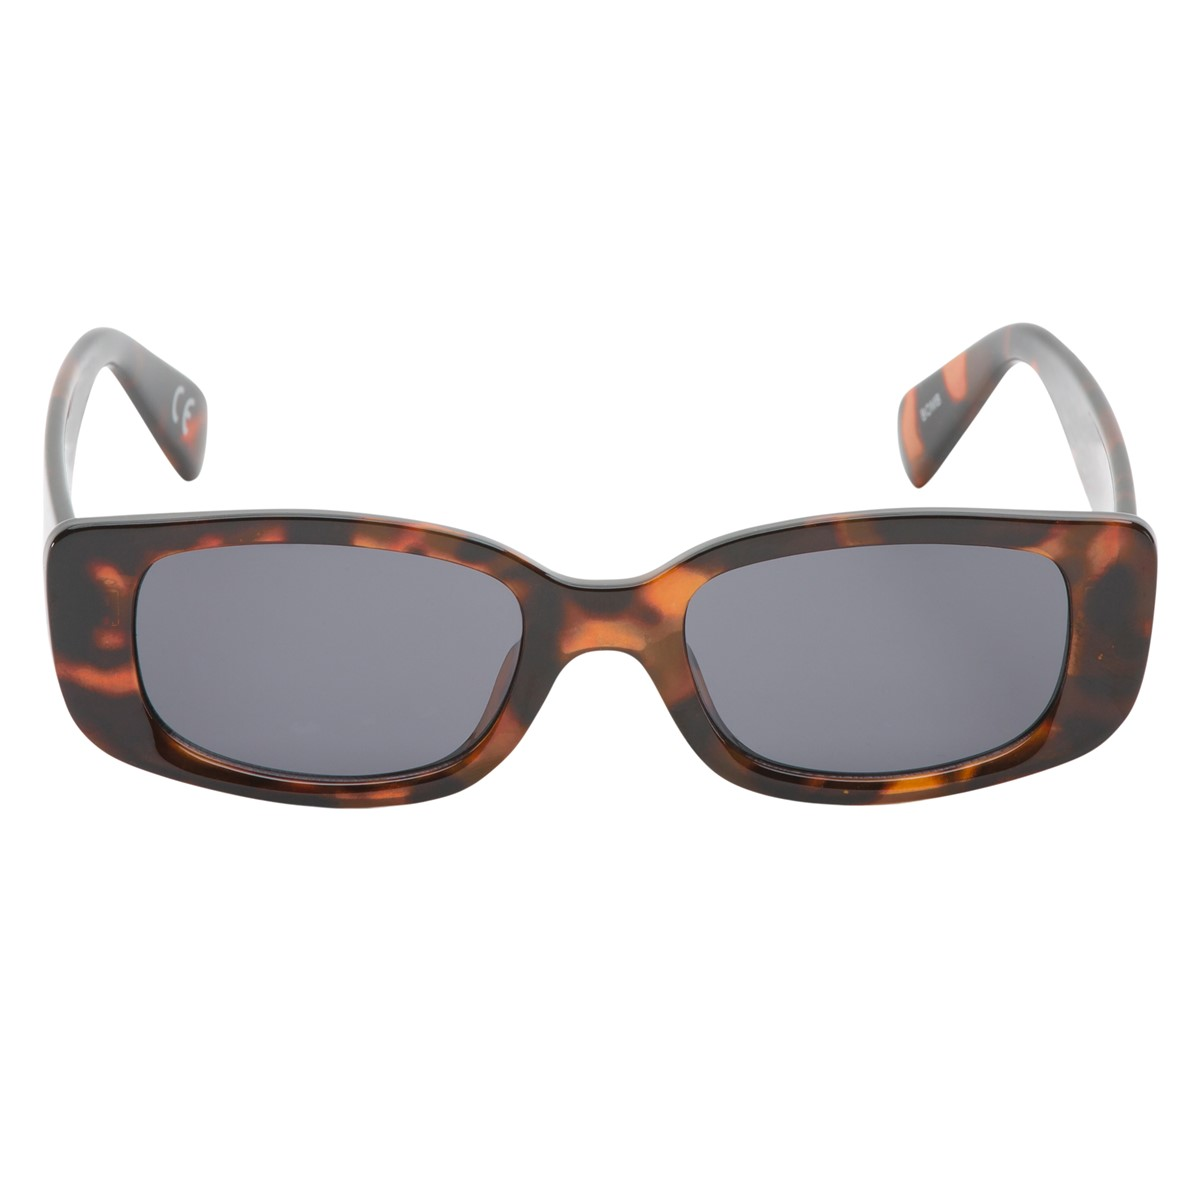 Bomb Shades in Cheetah Tortoise